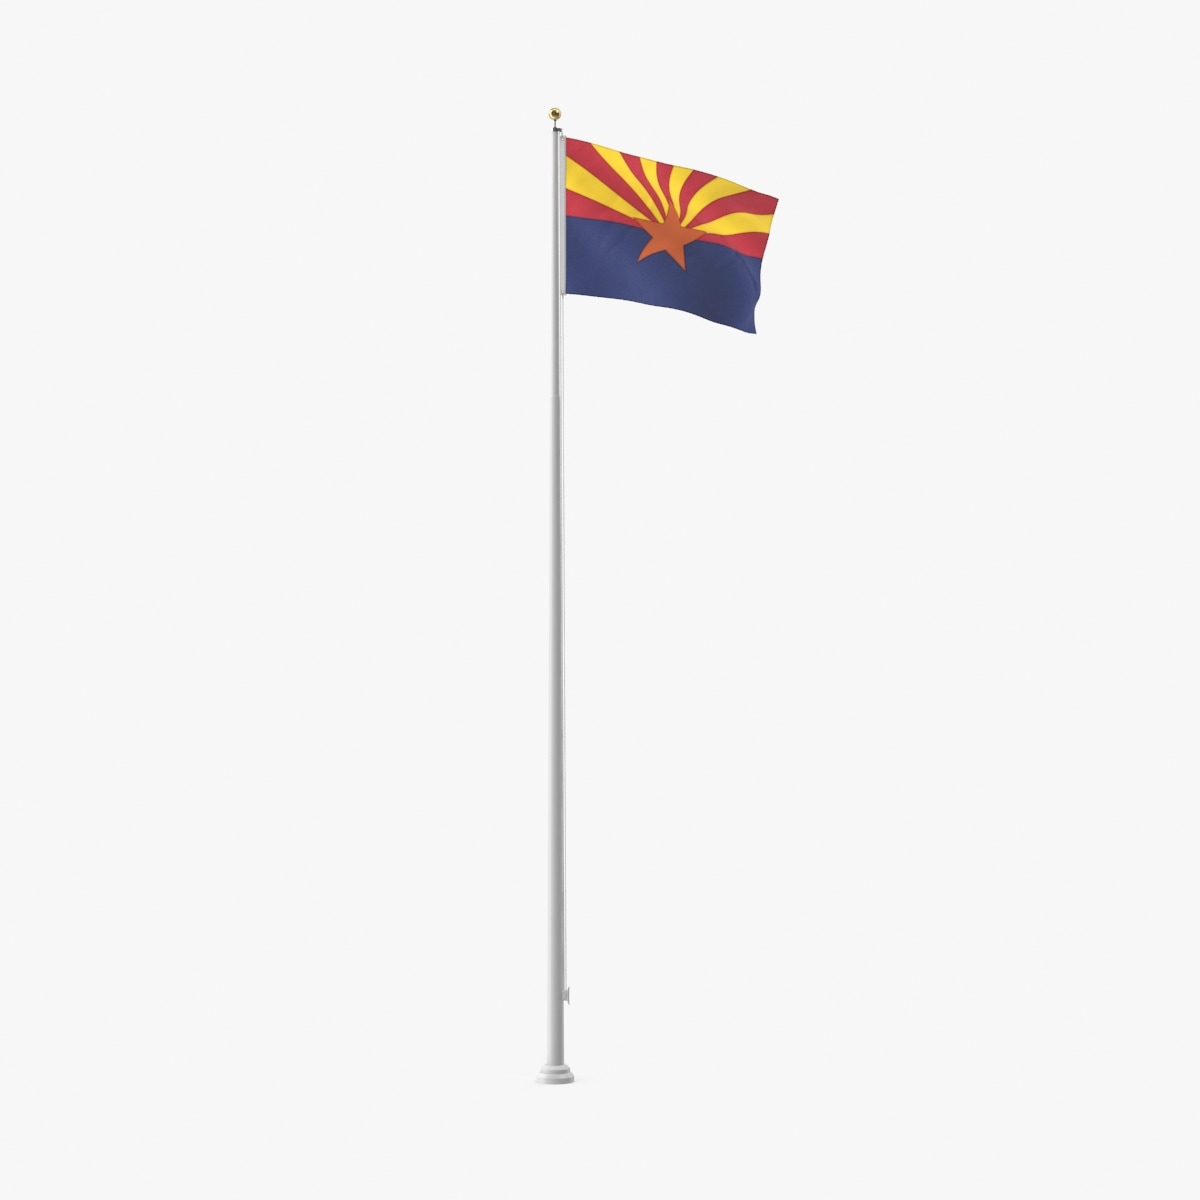 3D state-flags---arizona model